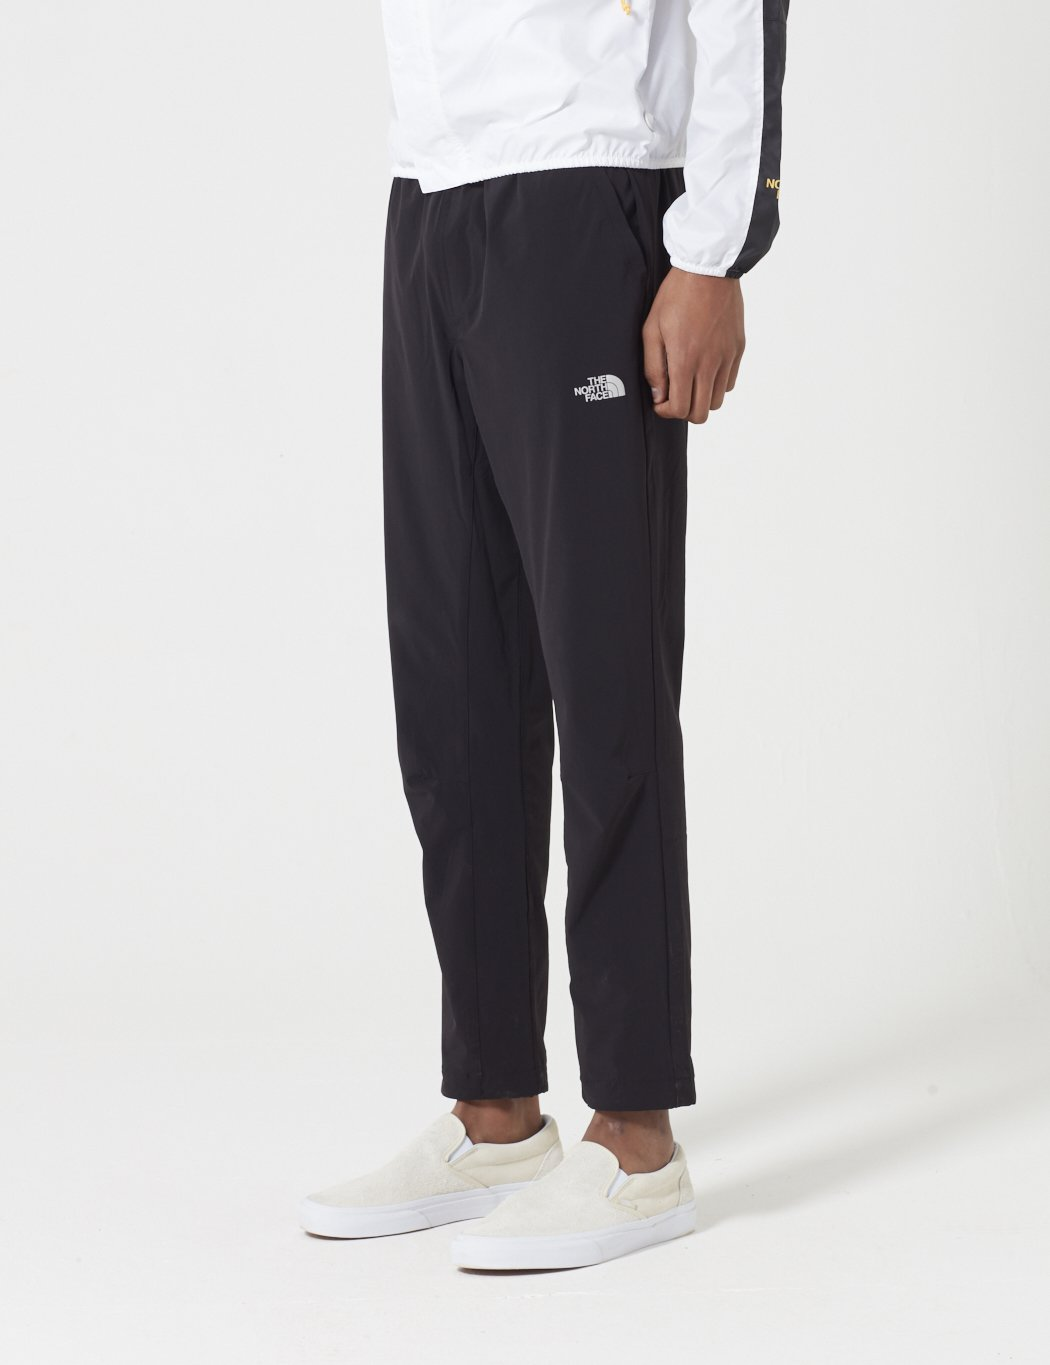 North Face Mountain Tech Pants - Black